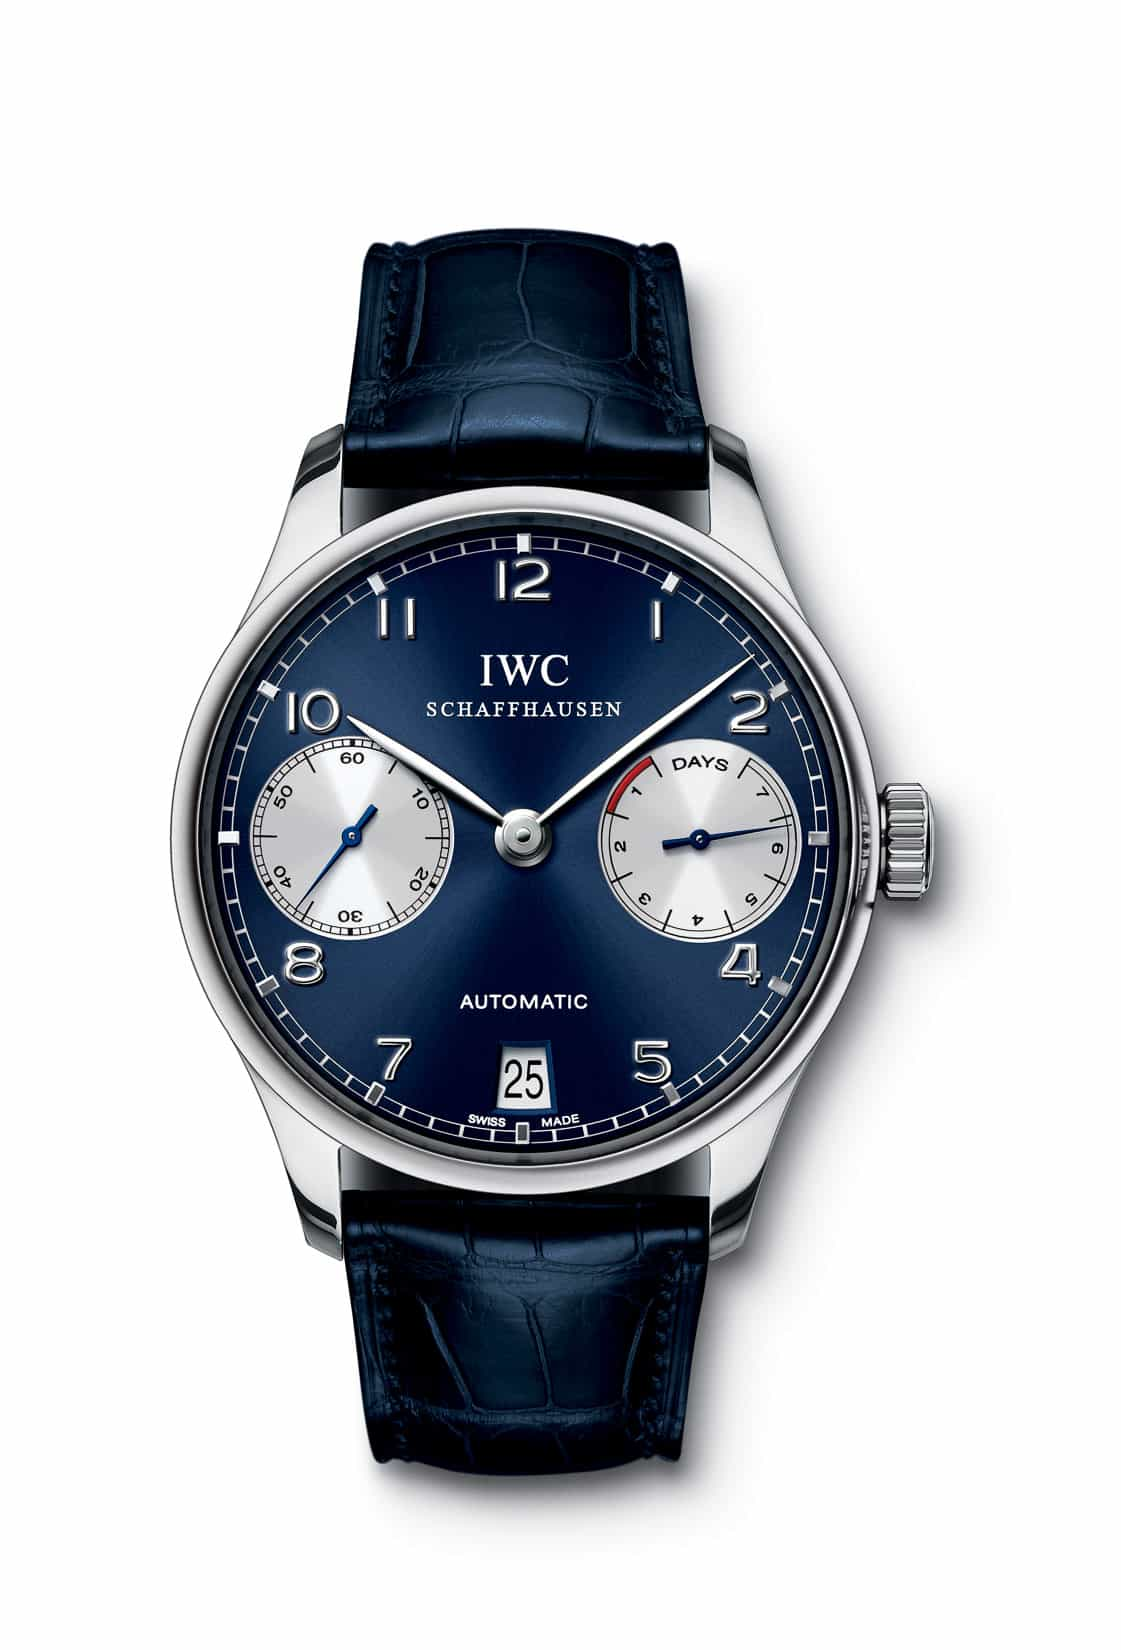 Hands-On With The IWC Da Vinci Chronograph Edition ...